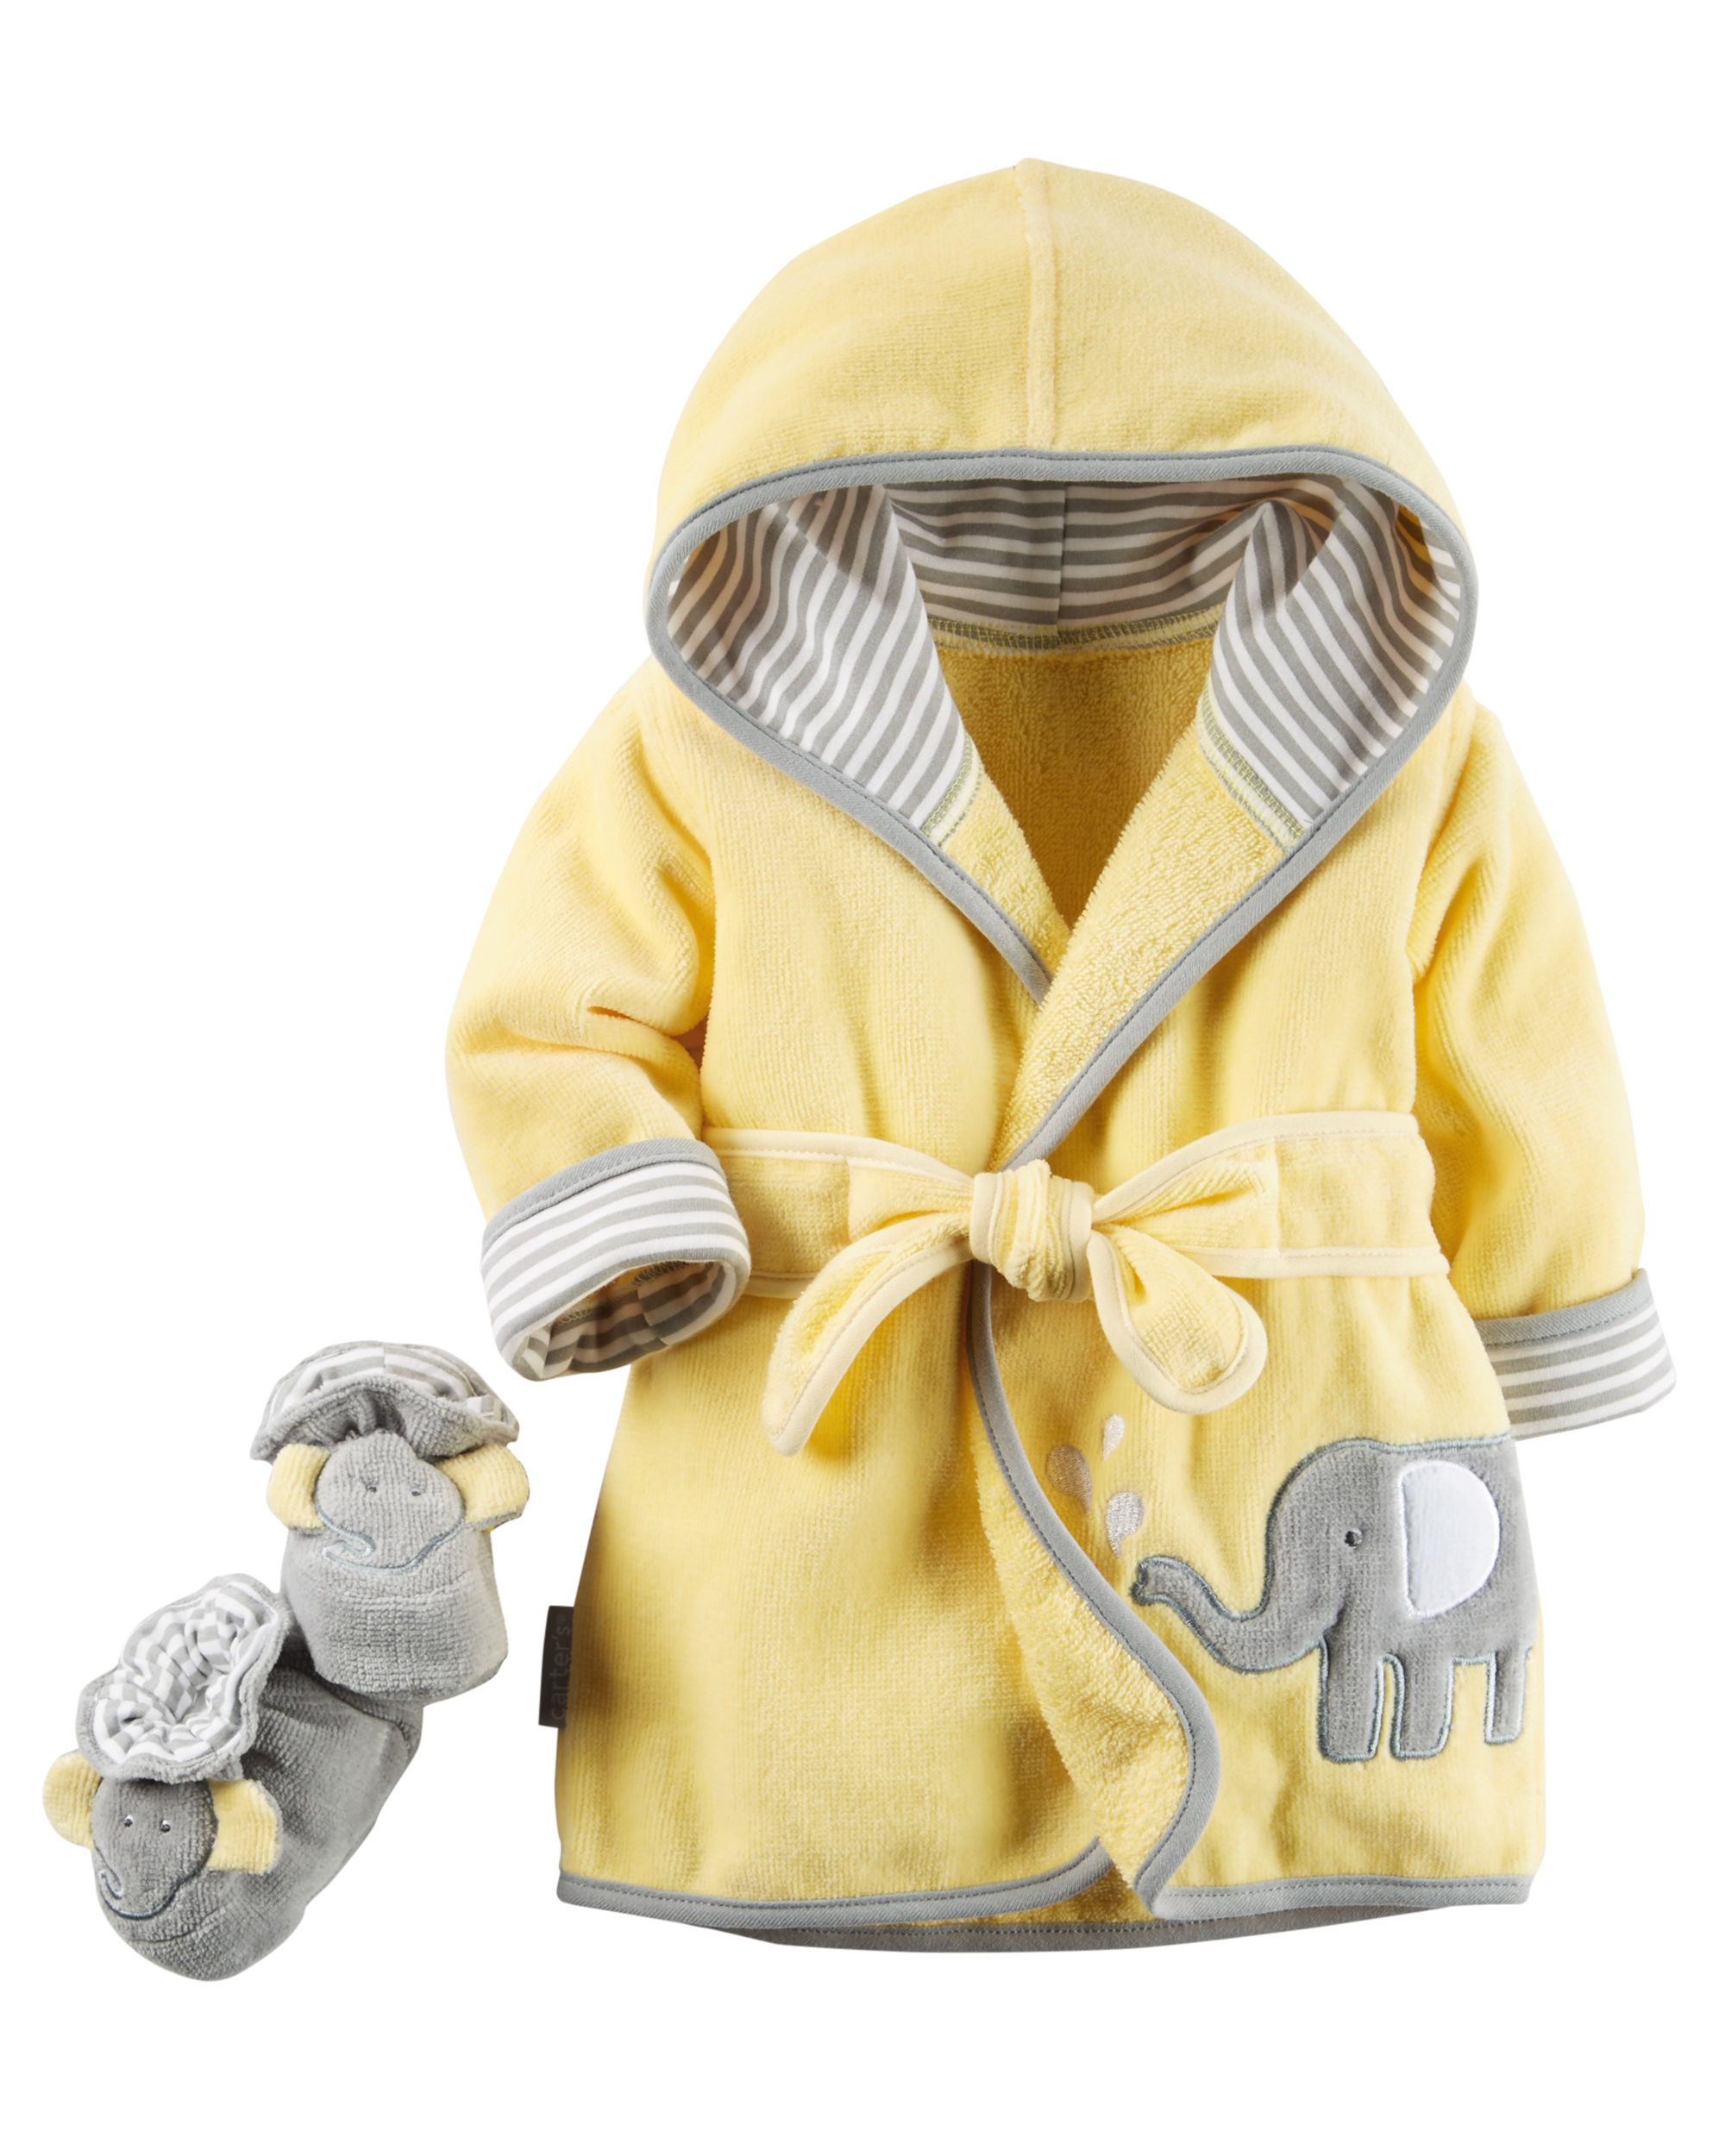 Hooded Robe and Bootie Set for Bathtime - $23.00